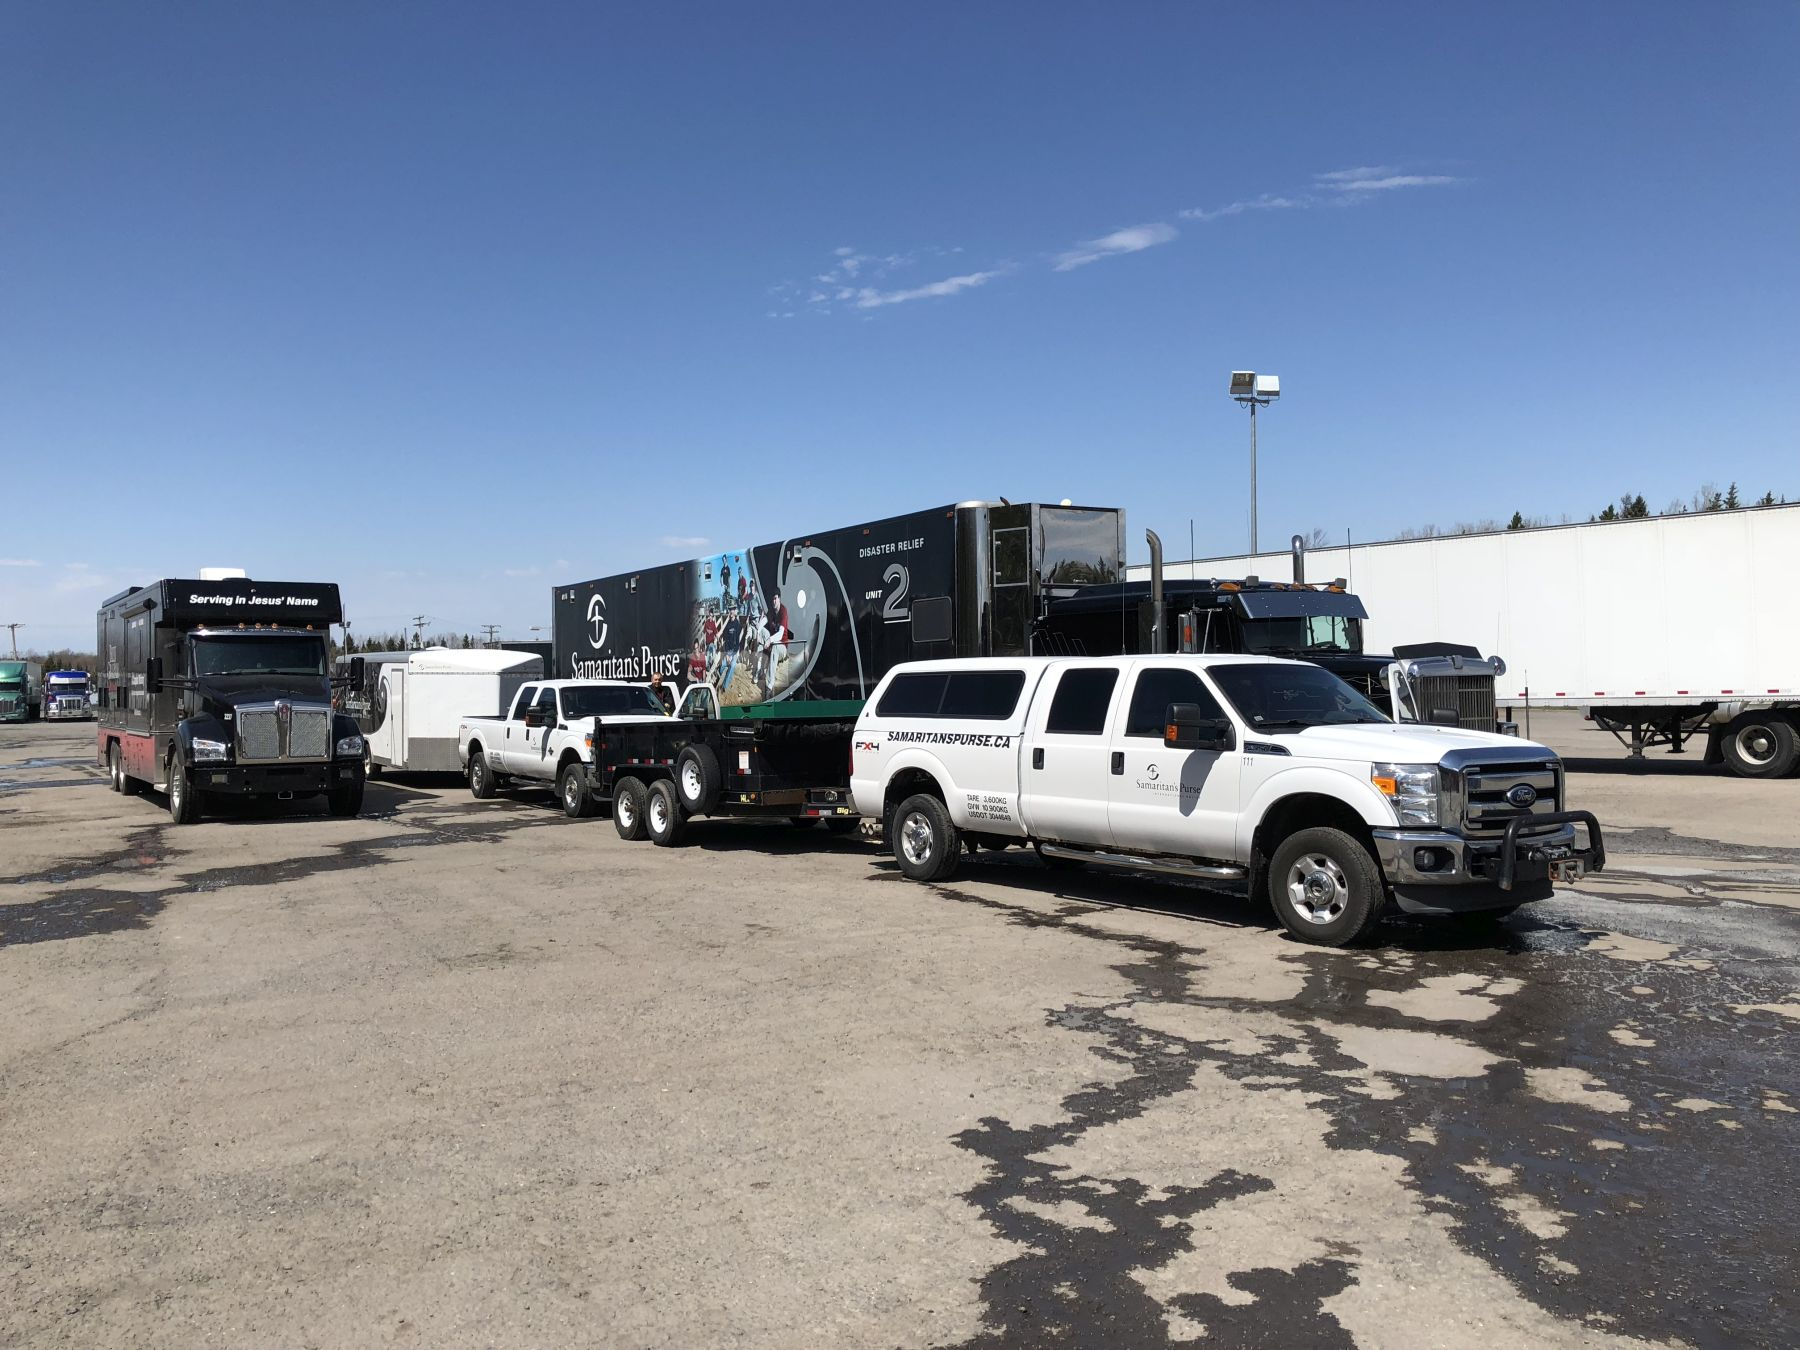 Samaritan's Purse's Disaster Relief Units (pictured right) are outfitted with generators, pumps, hand tools, shovels, chainsaws, and safety gear for volunteers. The Mobile Ministry Center truck (left) is used by crisis-trained Rapid Response Team chaplains from our sister organization, the Billy Graham Evangelistic Association.